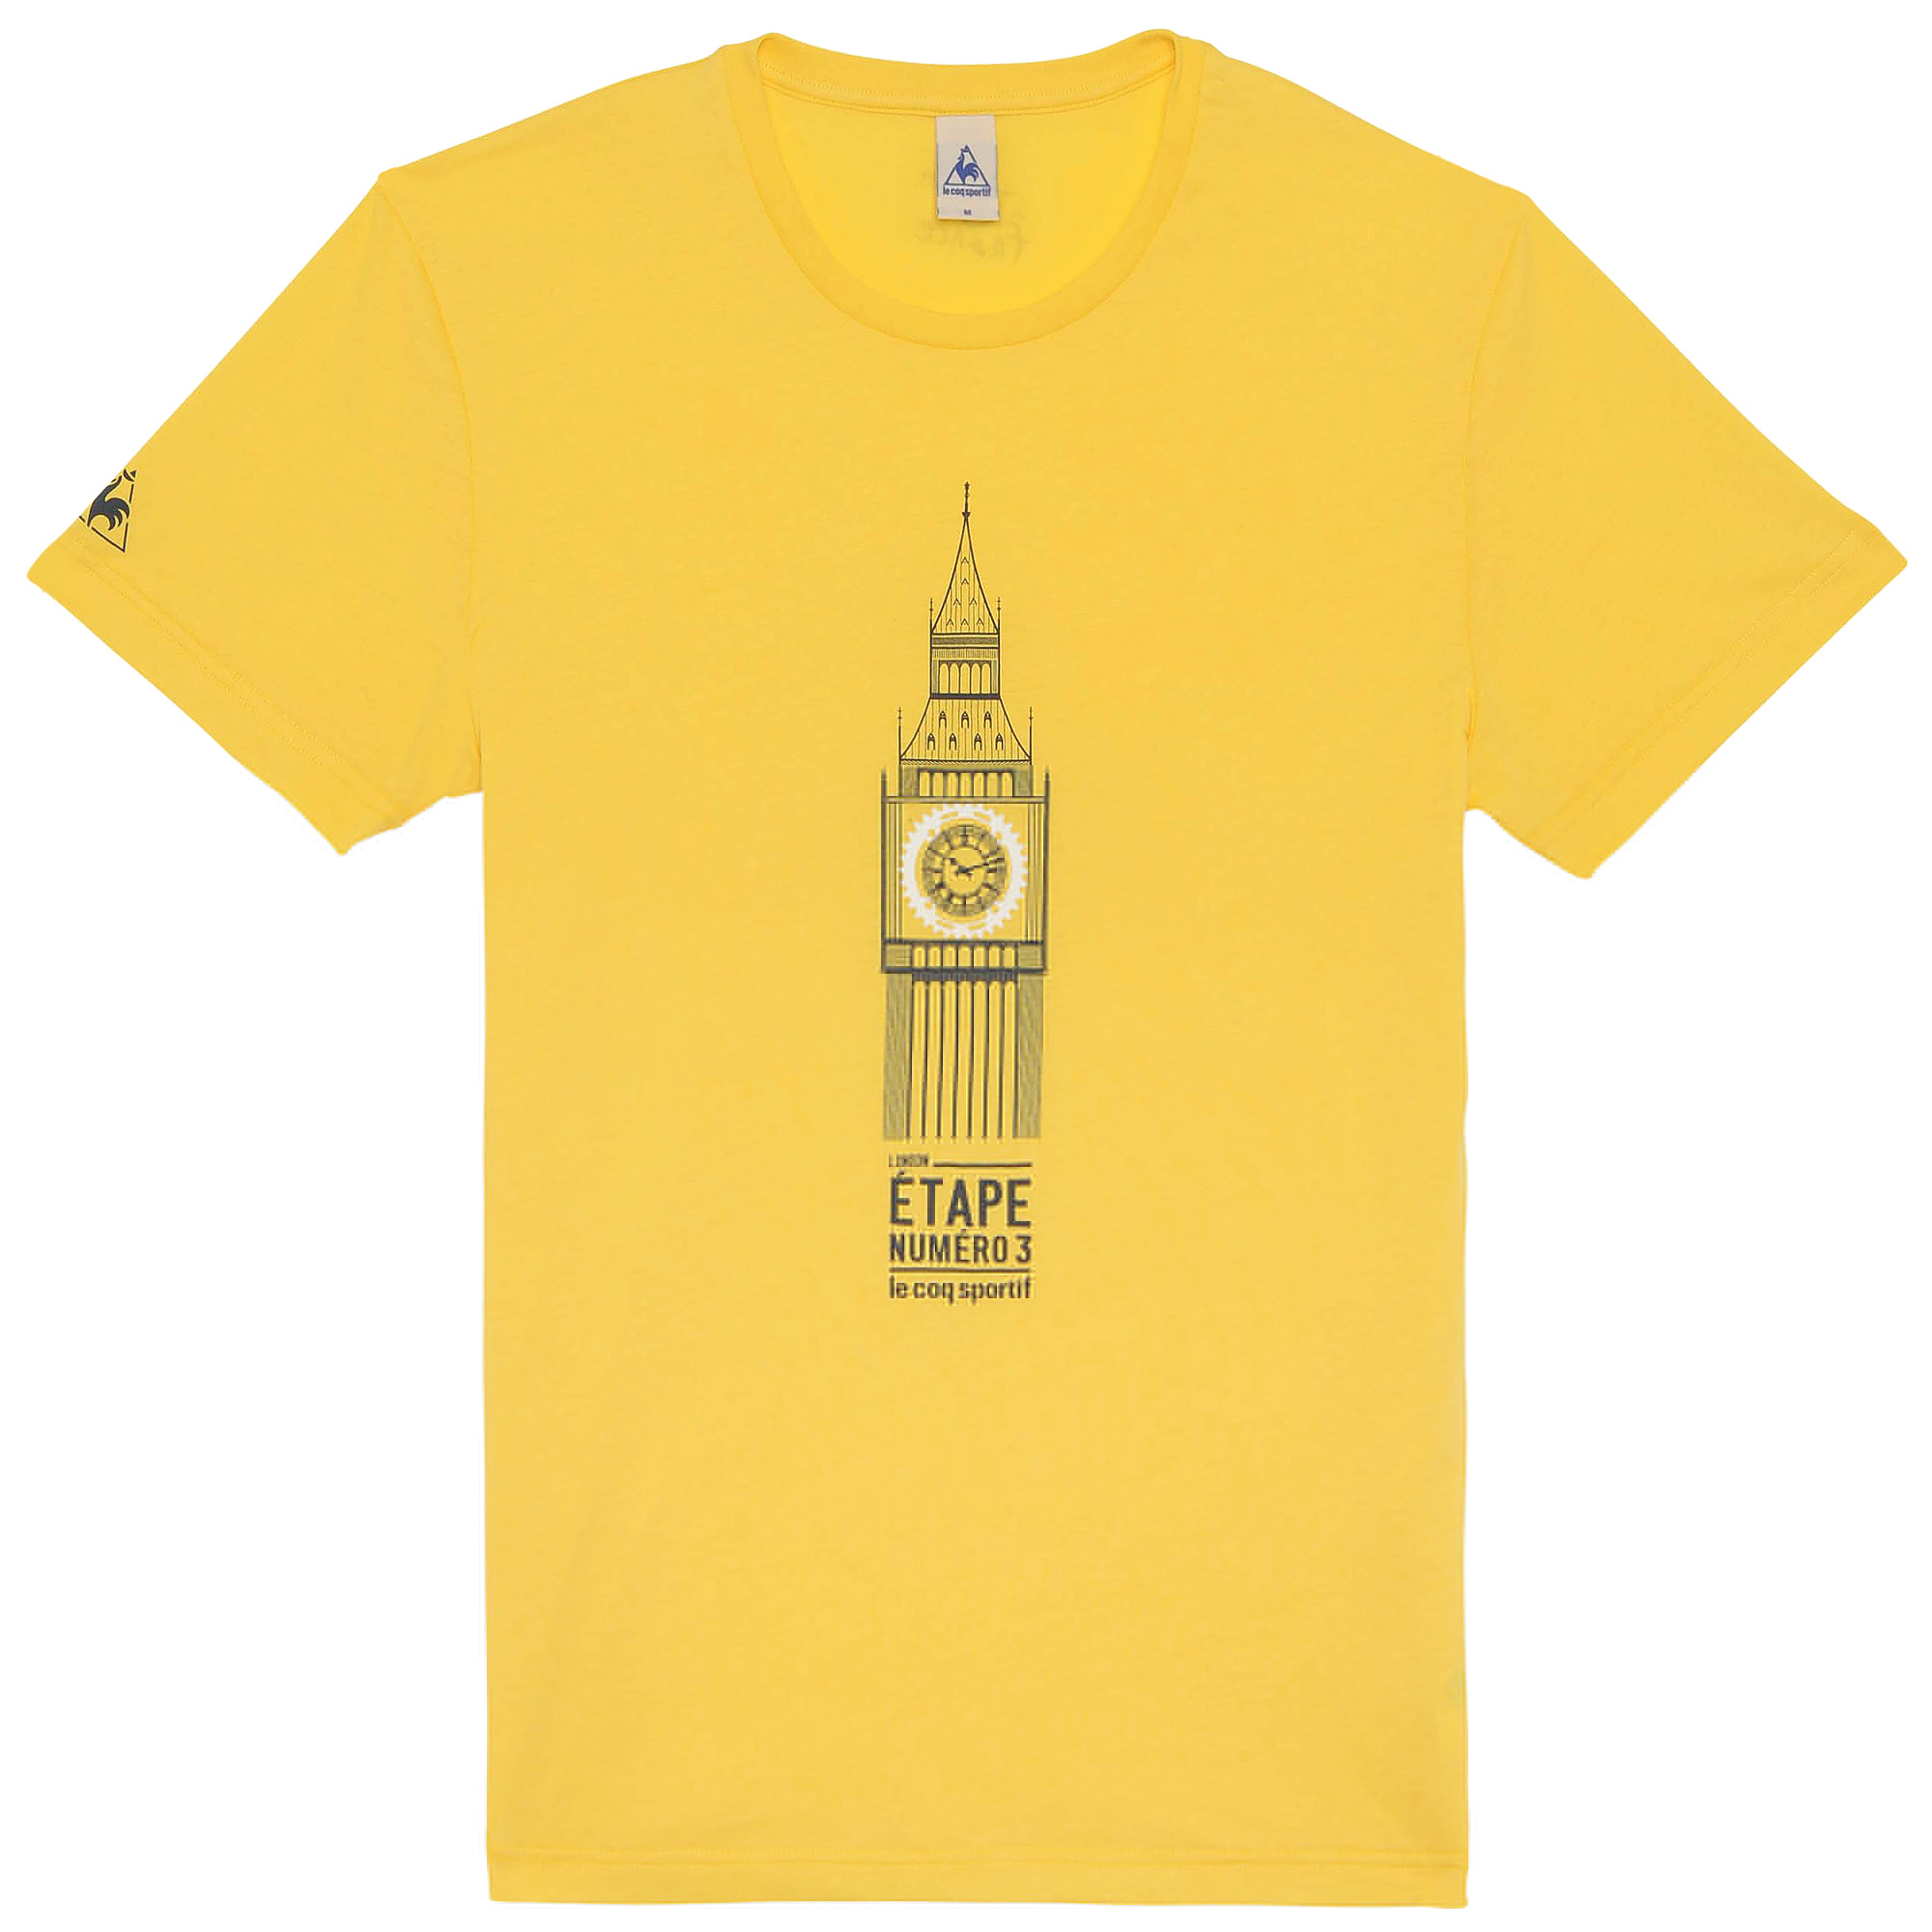 T Shirt Printing Online Cheap Uk